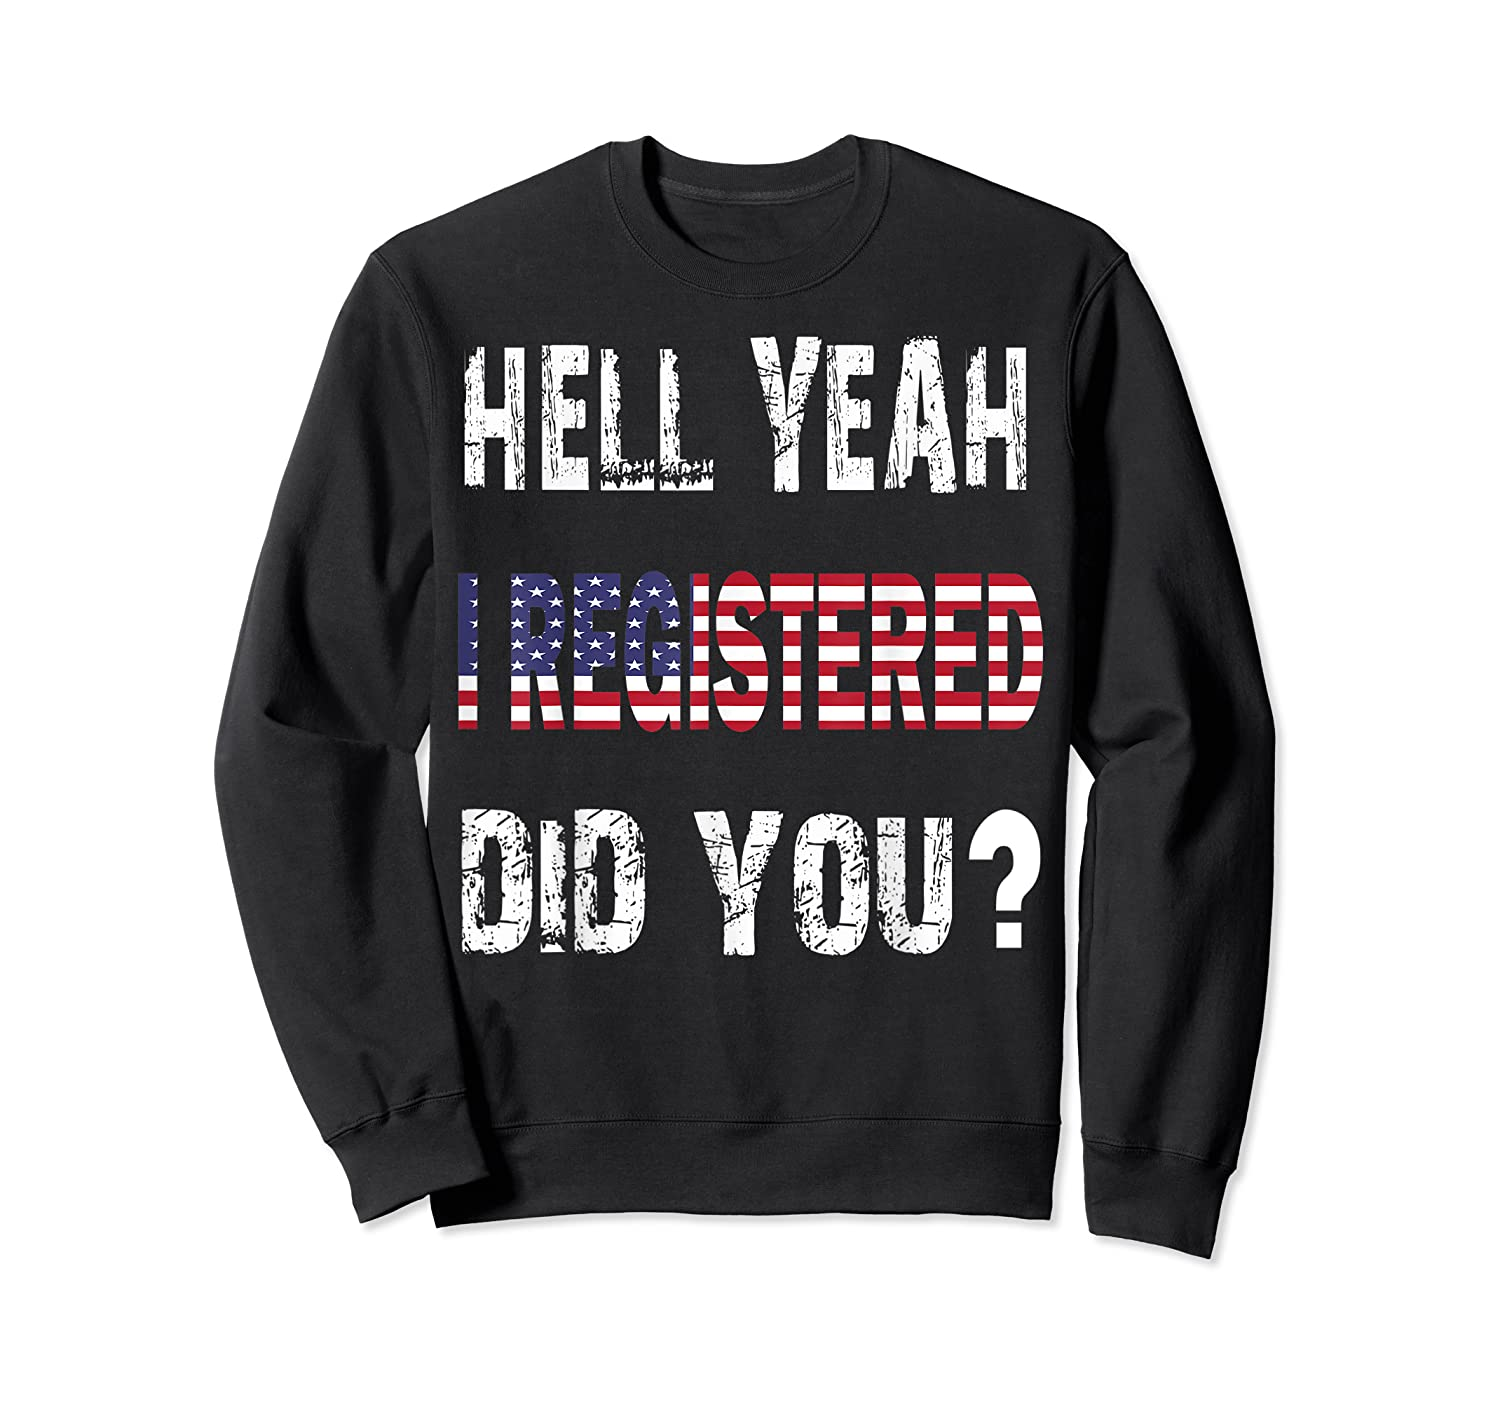 Registration Day Register To Vote Us Election Gift T Shirt Crewneck Sweater